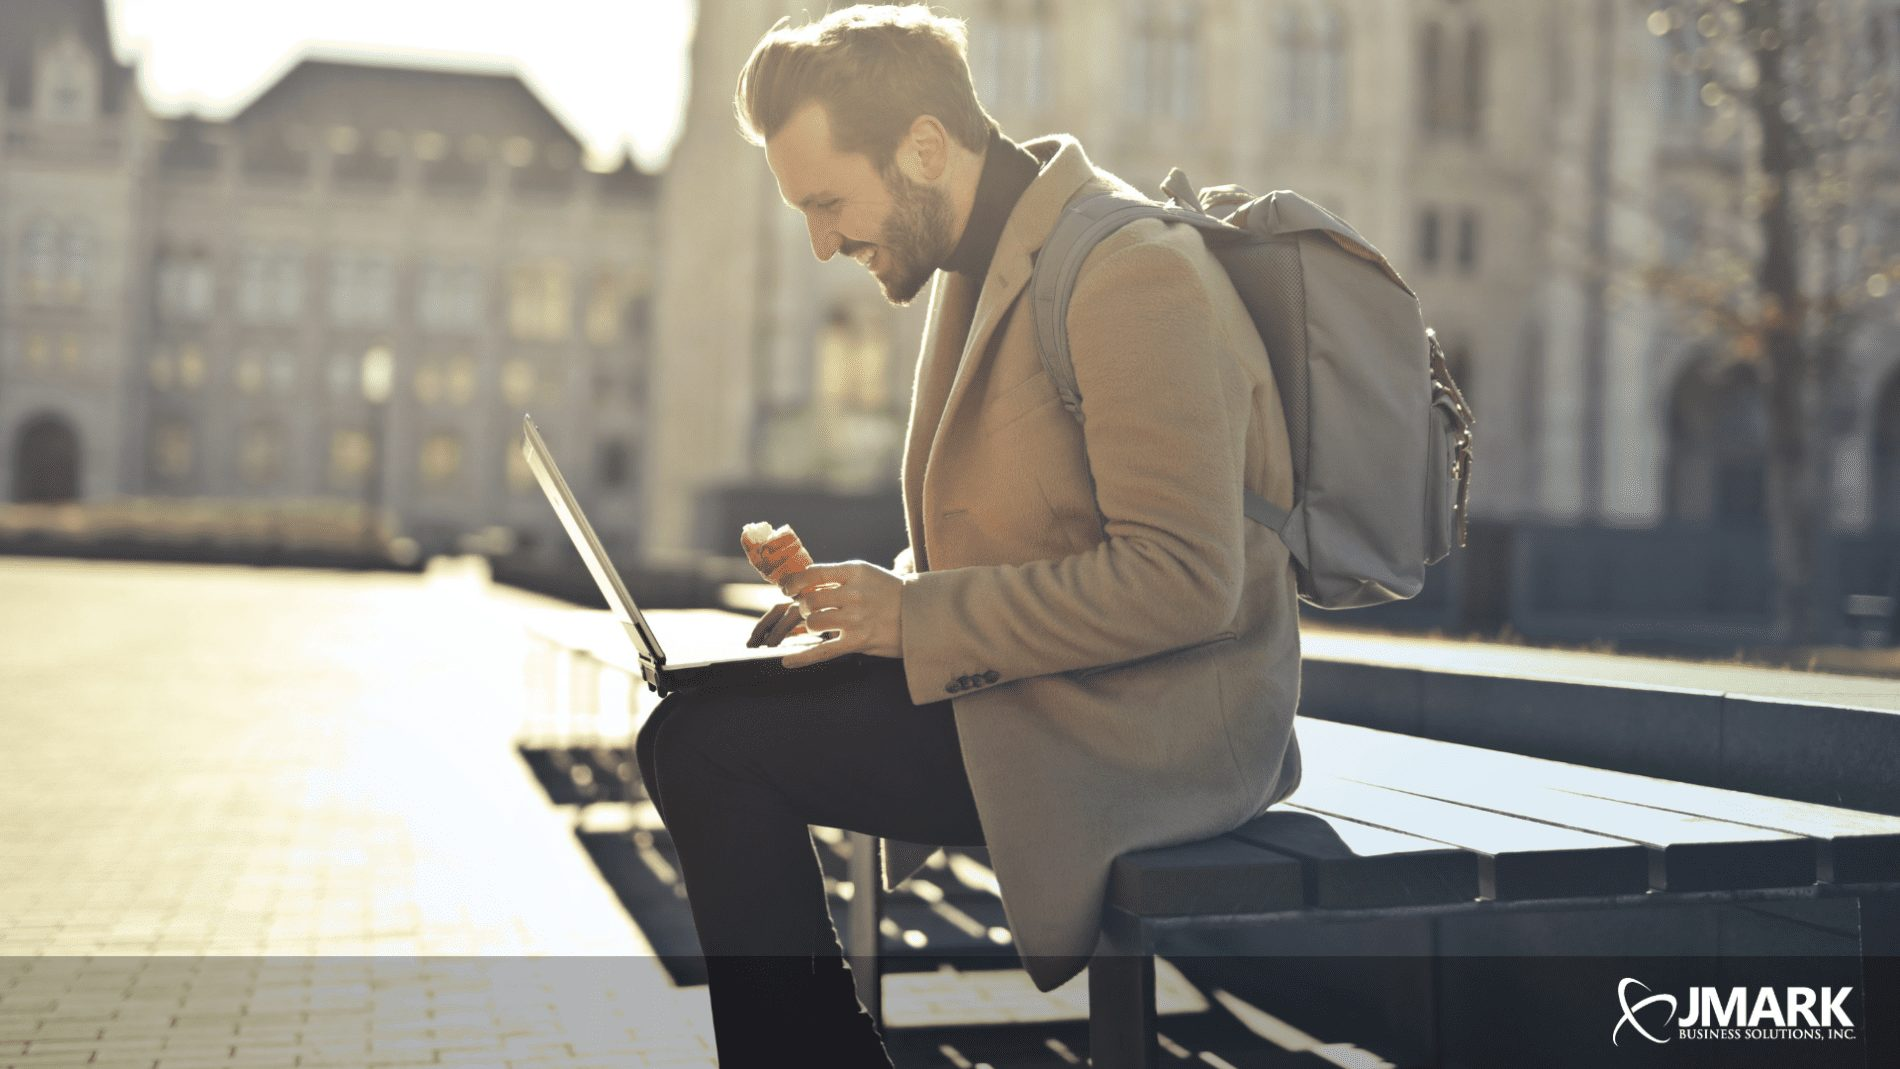 Banner - Working from a Remote Location? How to Keep Your Business Data Safe